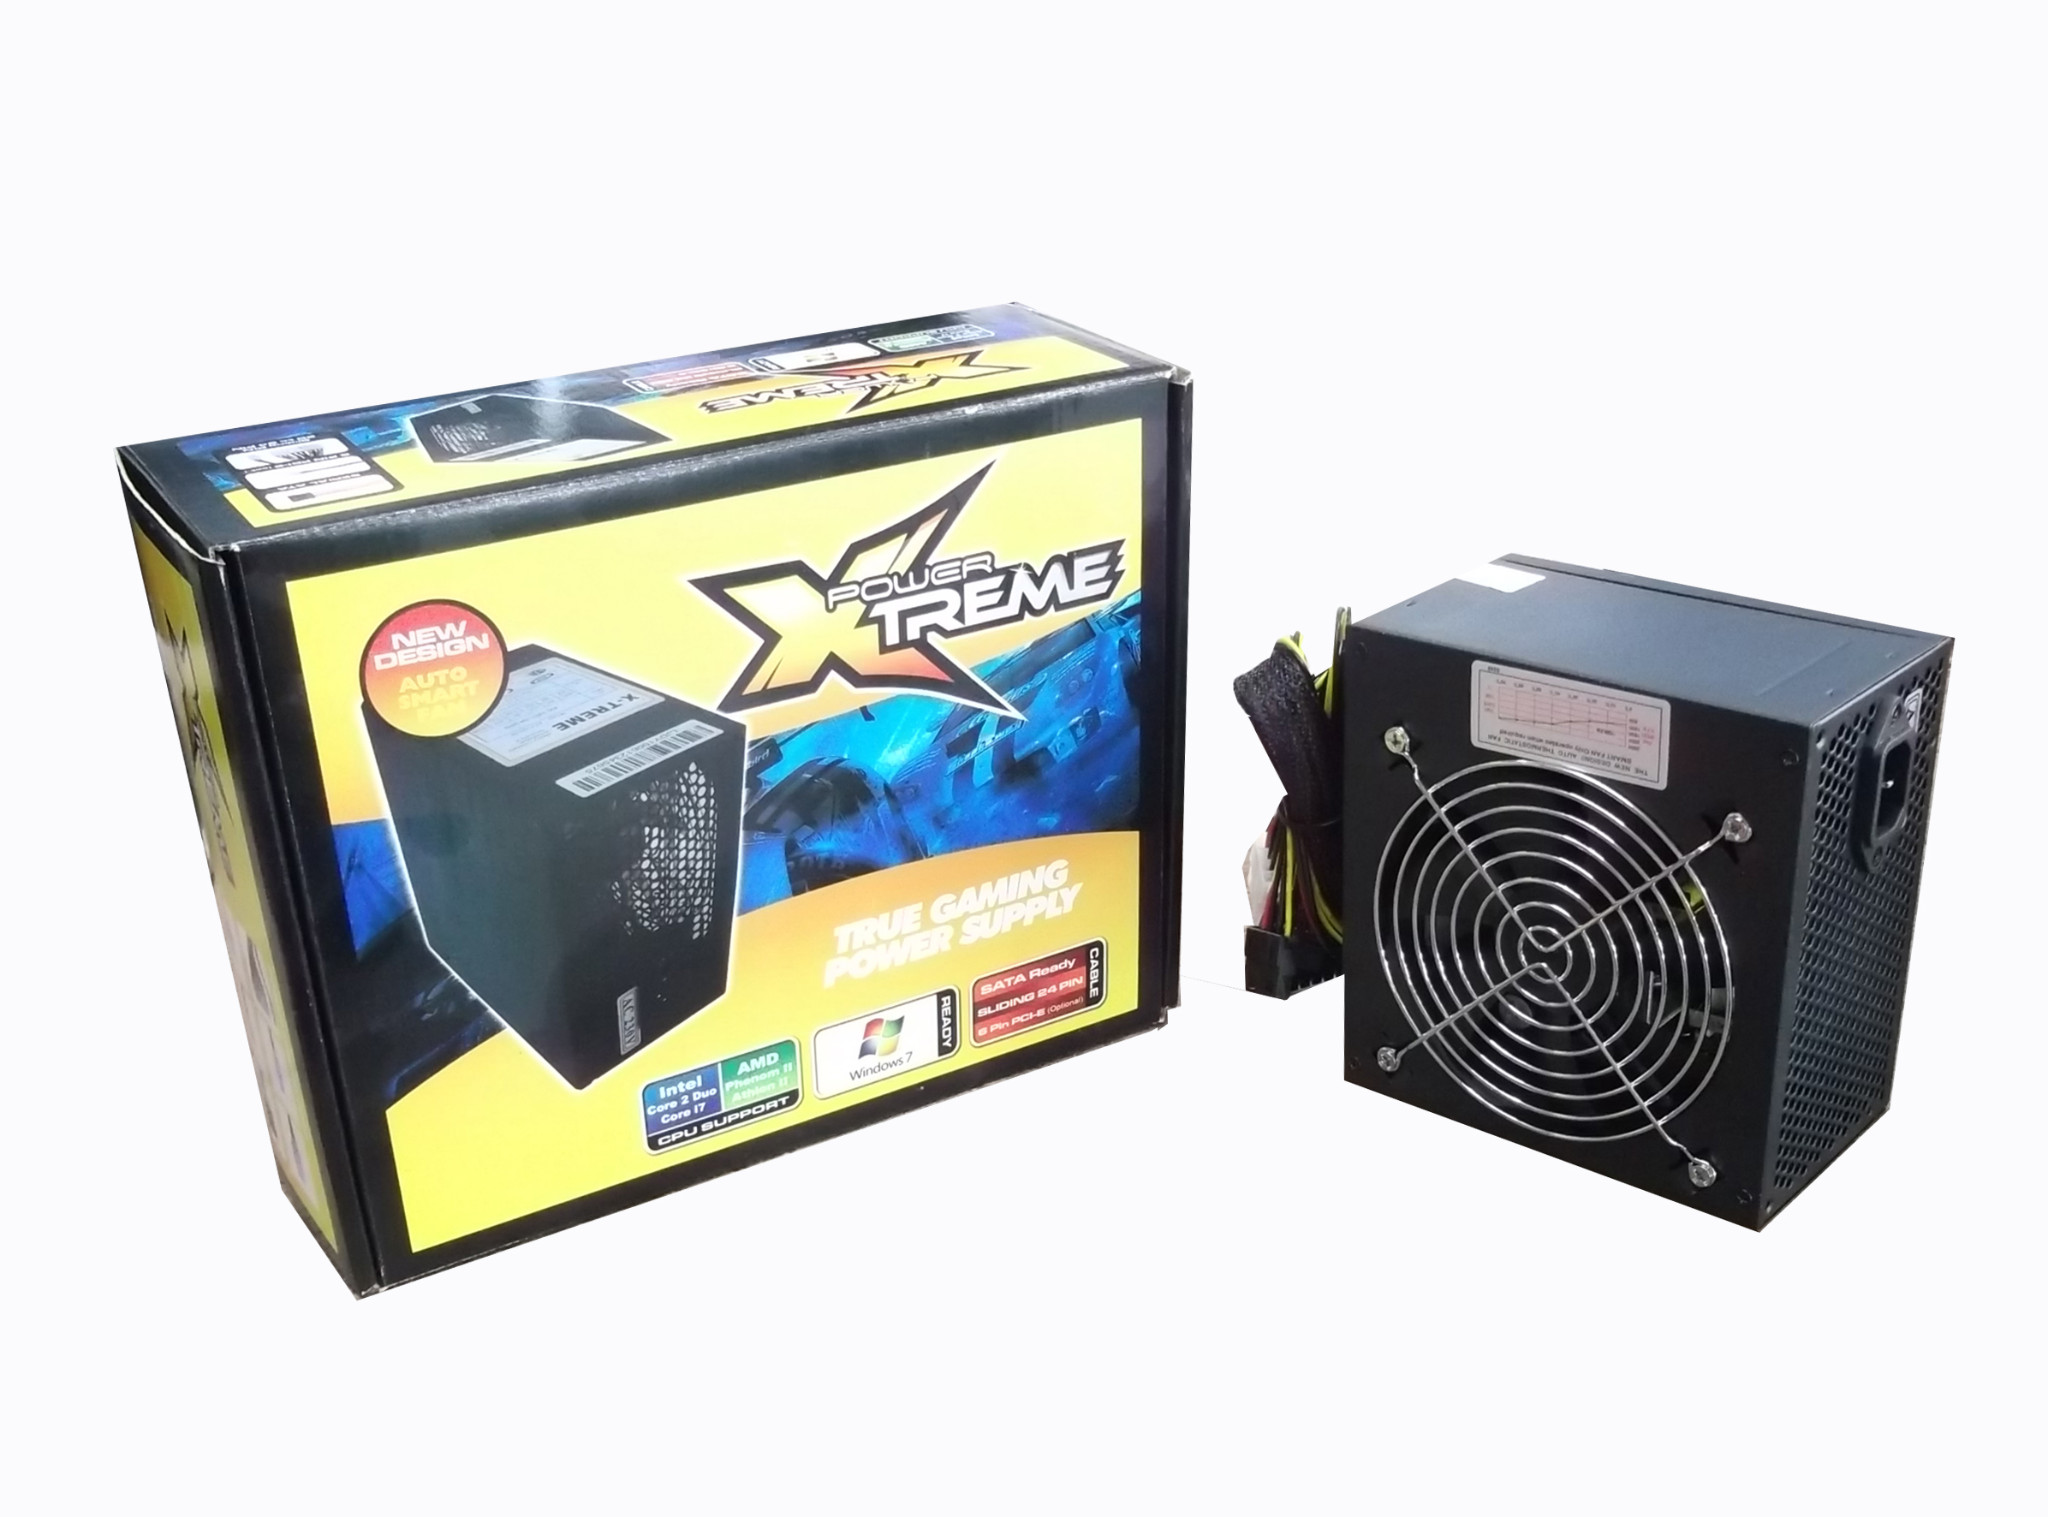 Power Supply X-treme 500watt